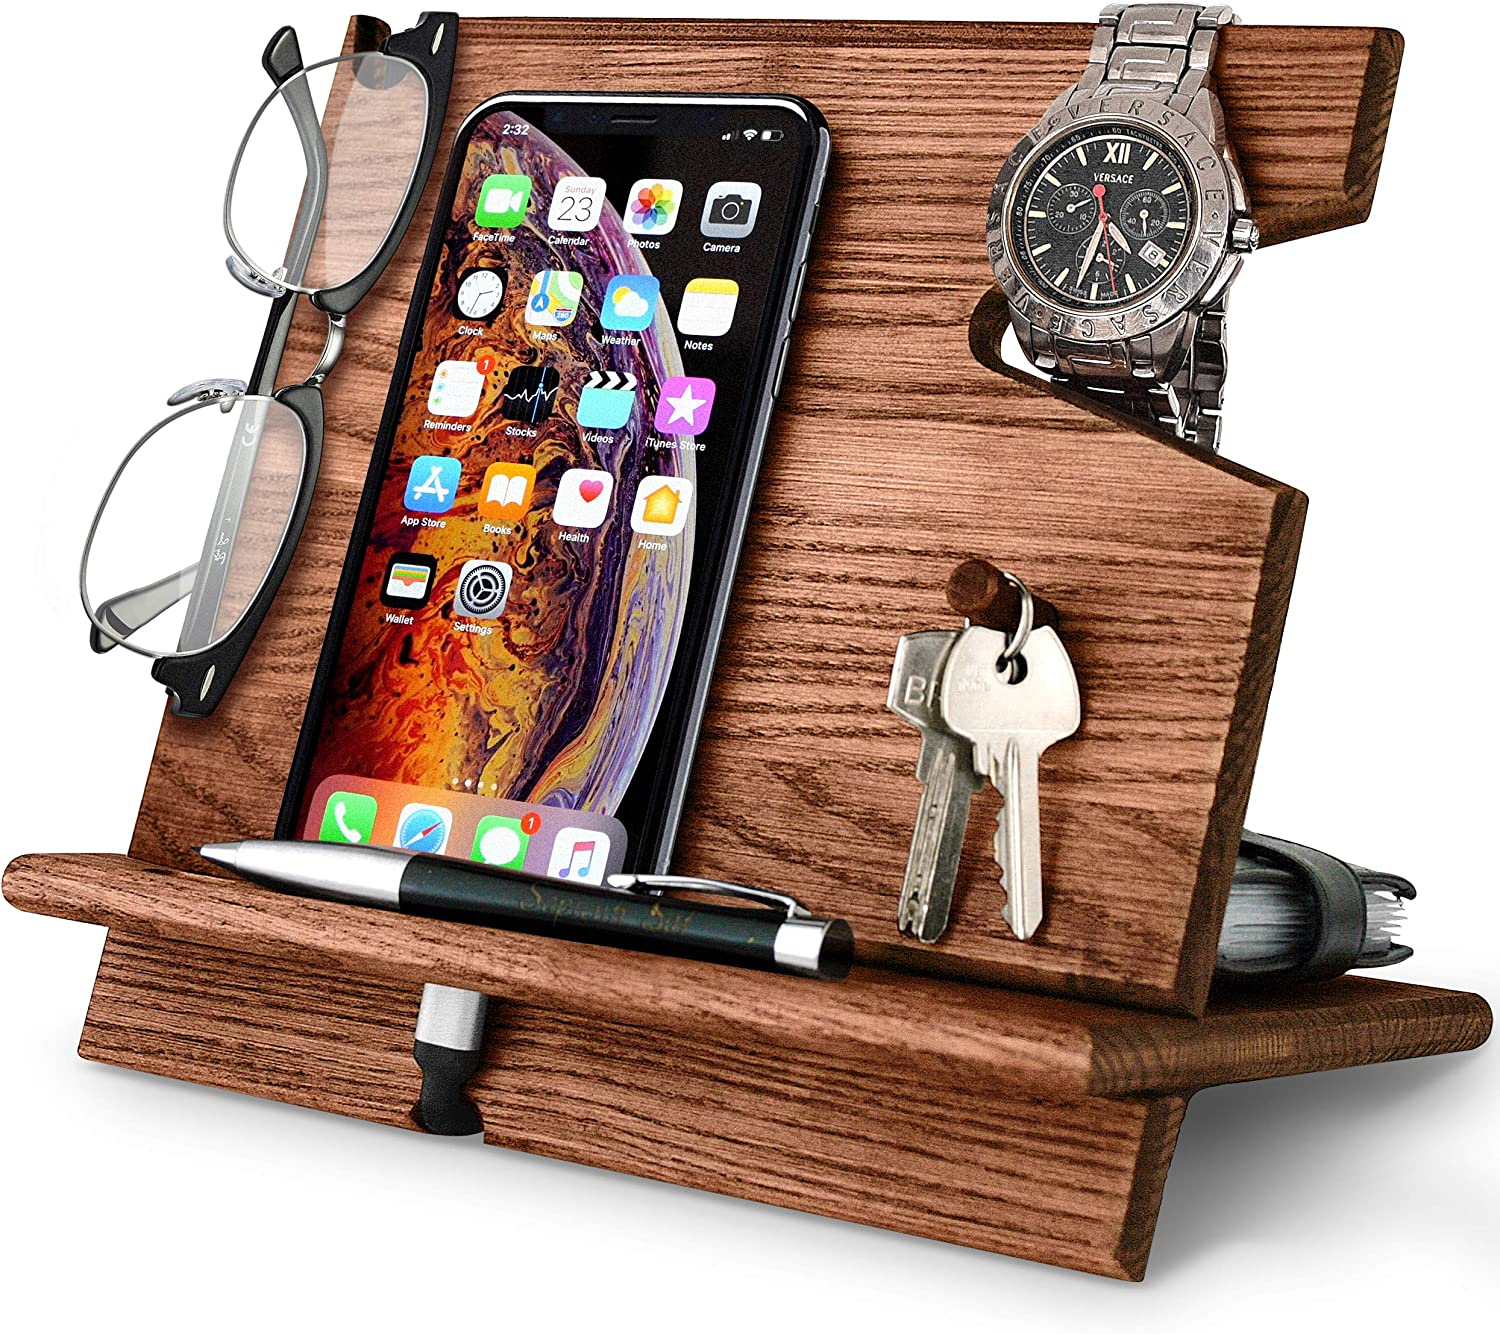 gift phone stand Electronic Stand phone stand wooden phone stand Docking Station Charging Station Wooden Mobile Phone Stand